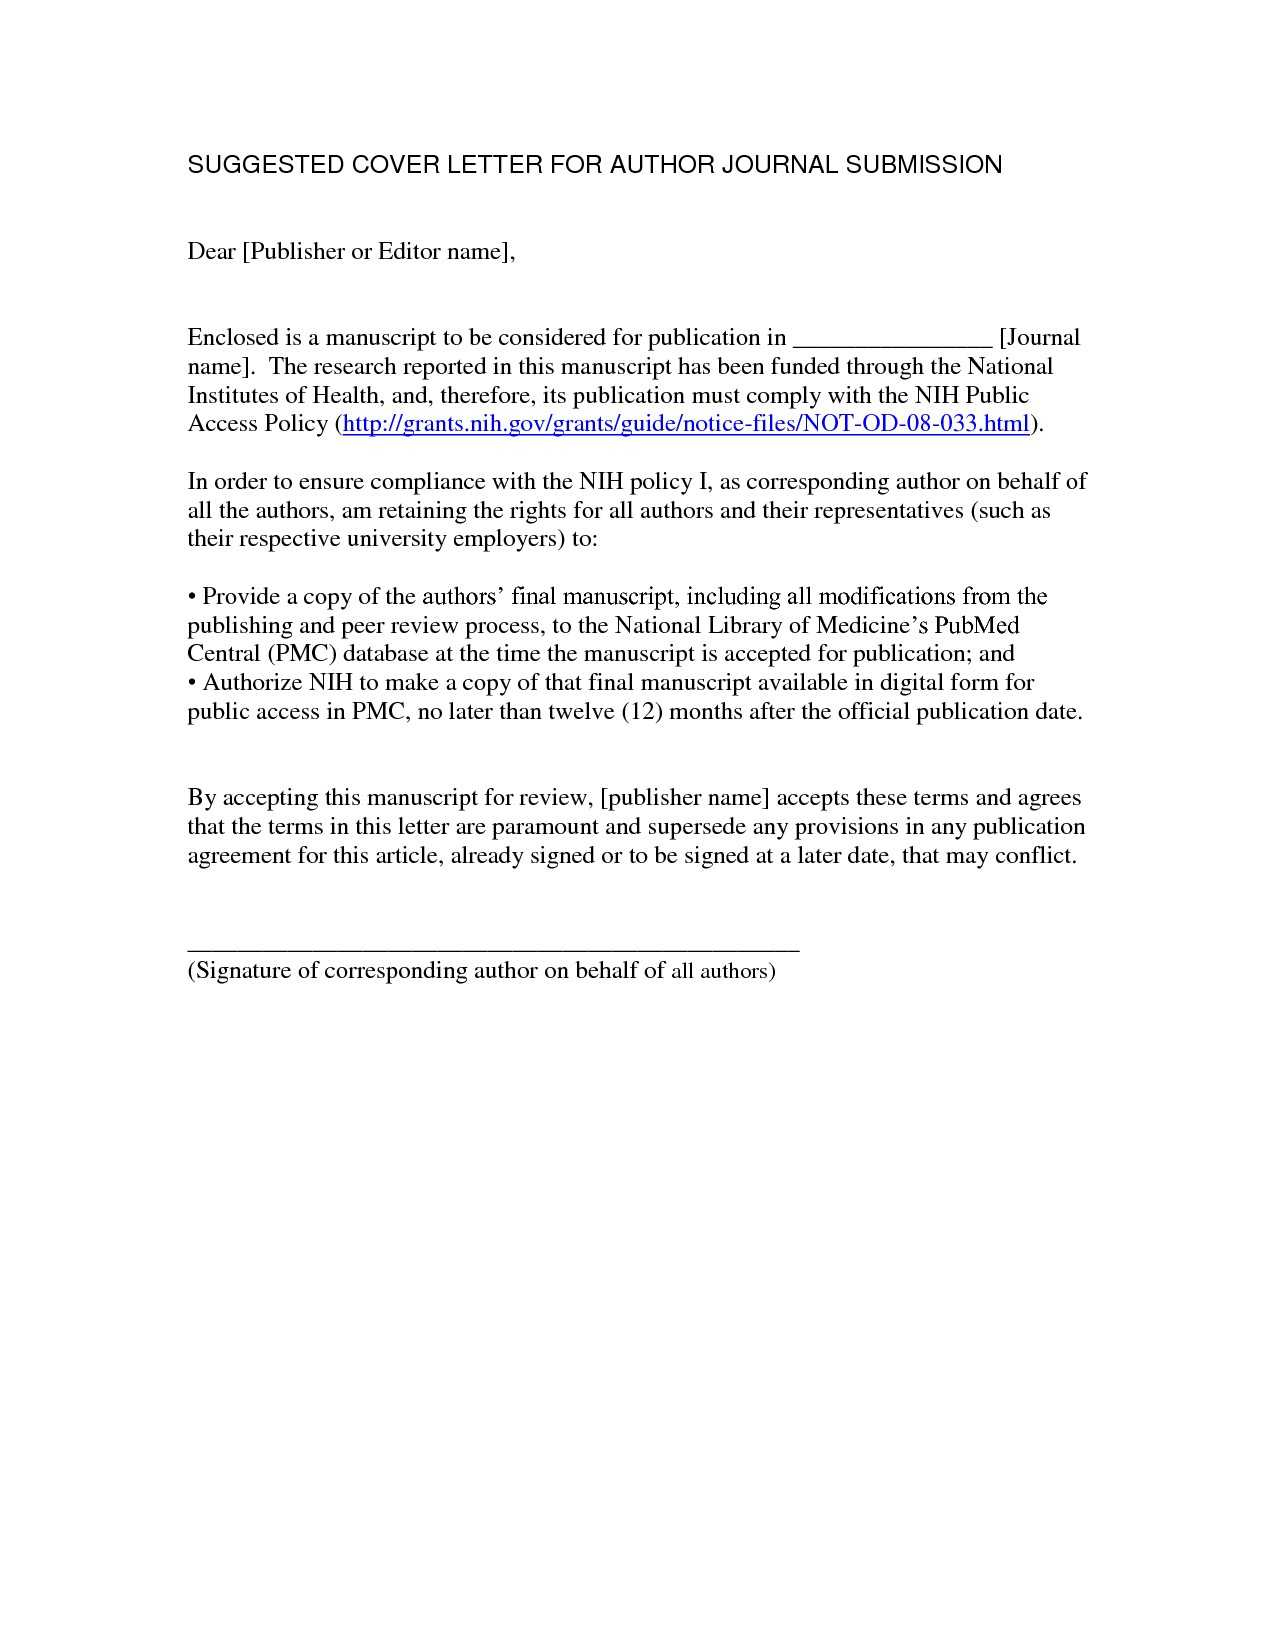 Sample Addendum Letter Template on employee termination, university petition, employment termination, professional cover, campaign fundraising, resume cover, character reference, for kids, business proposal, company introduction, donation request,